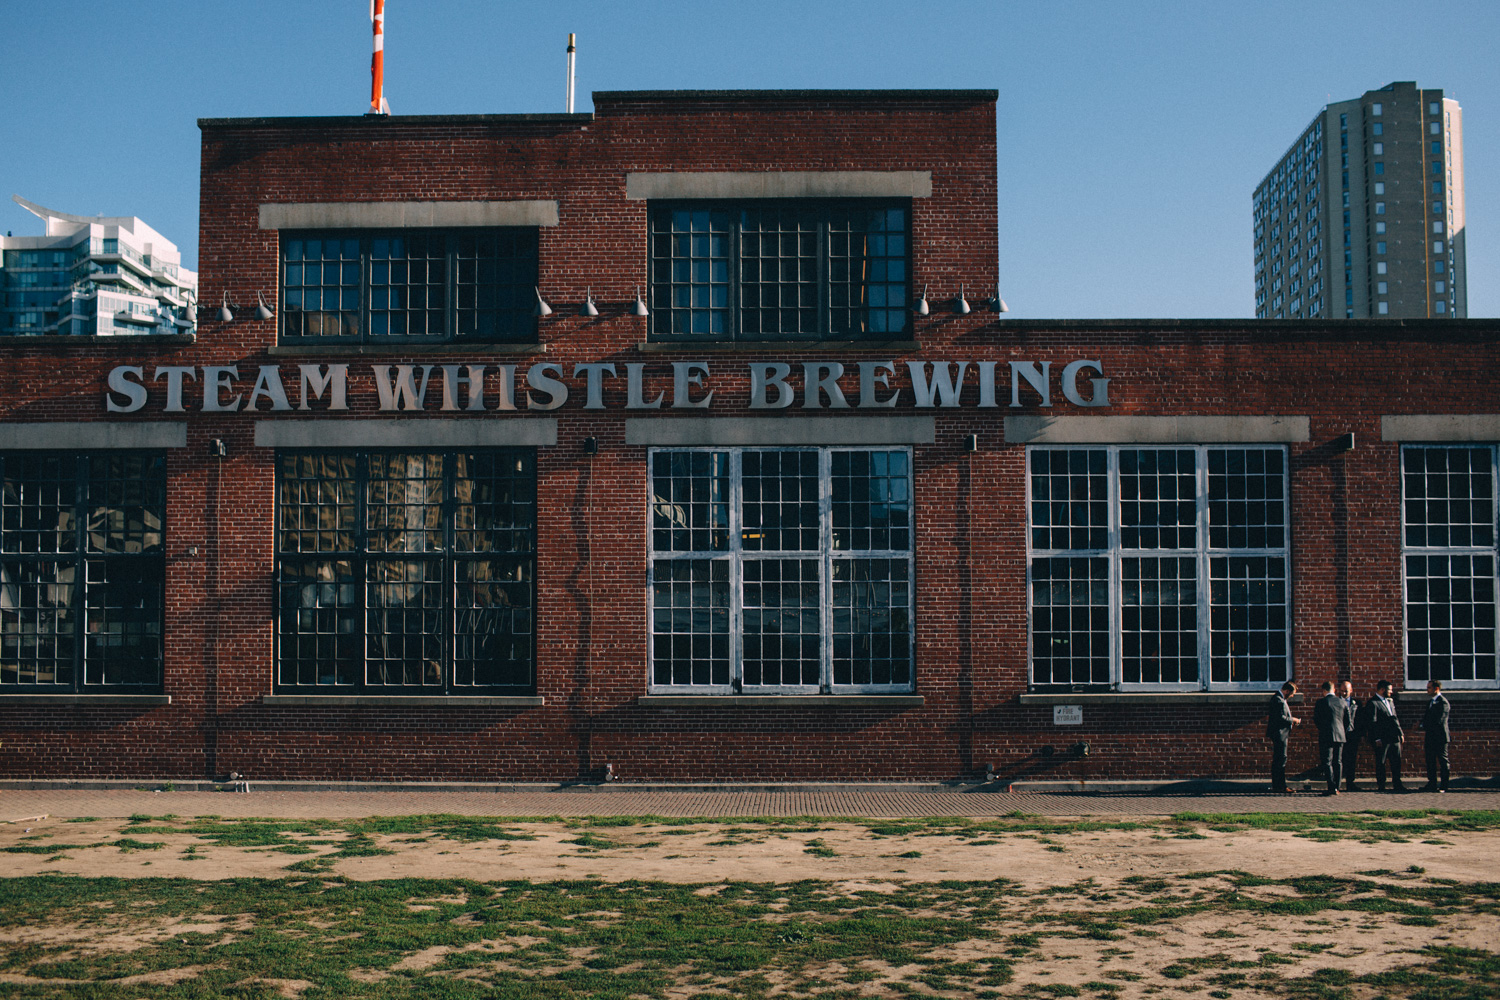 steam-whistle-brewery-wedding-photos-toronto-wedding-photography-by-sam-wong-of-artanis-collective_01035